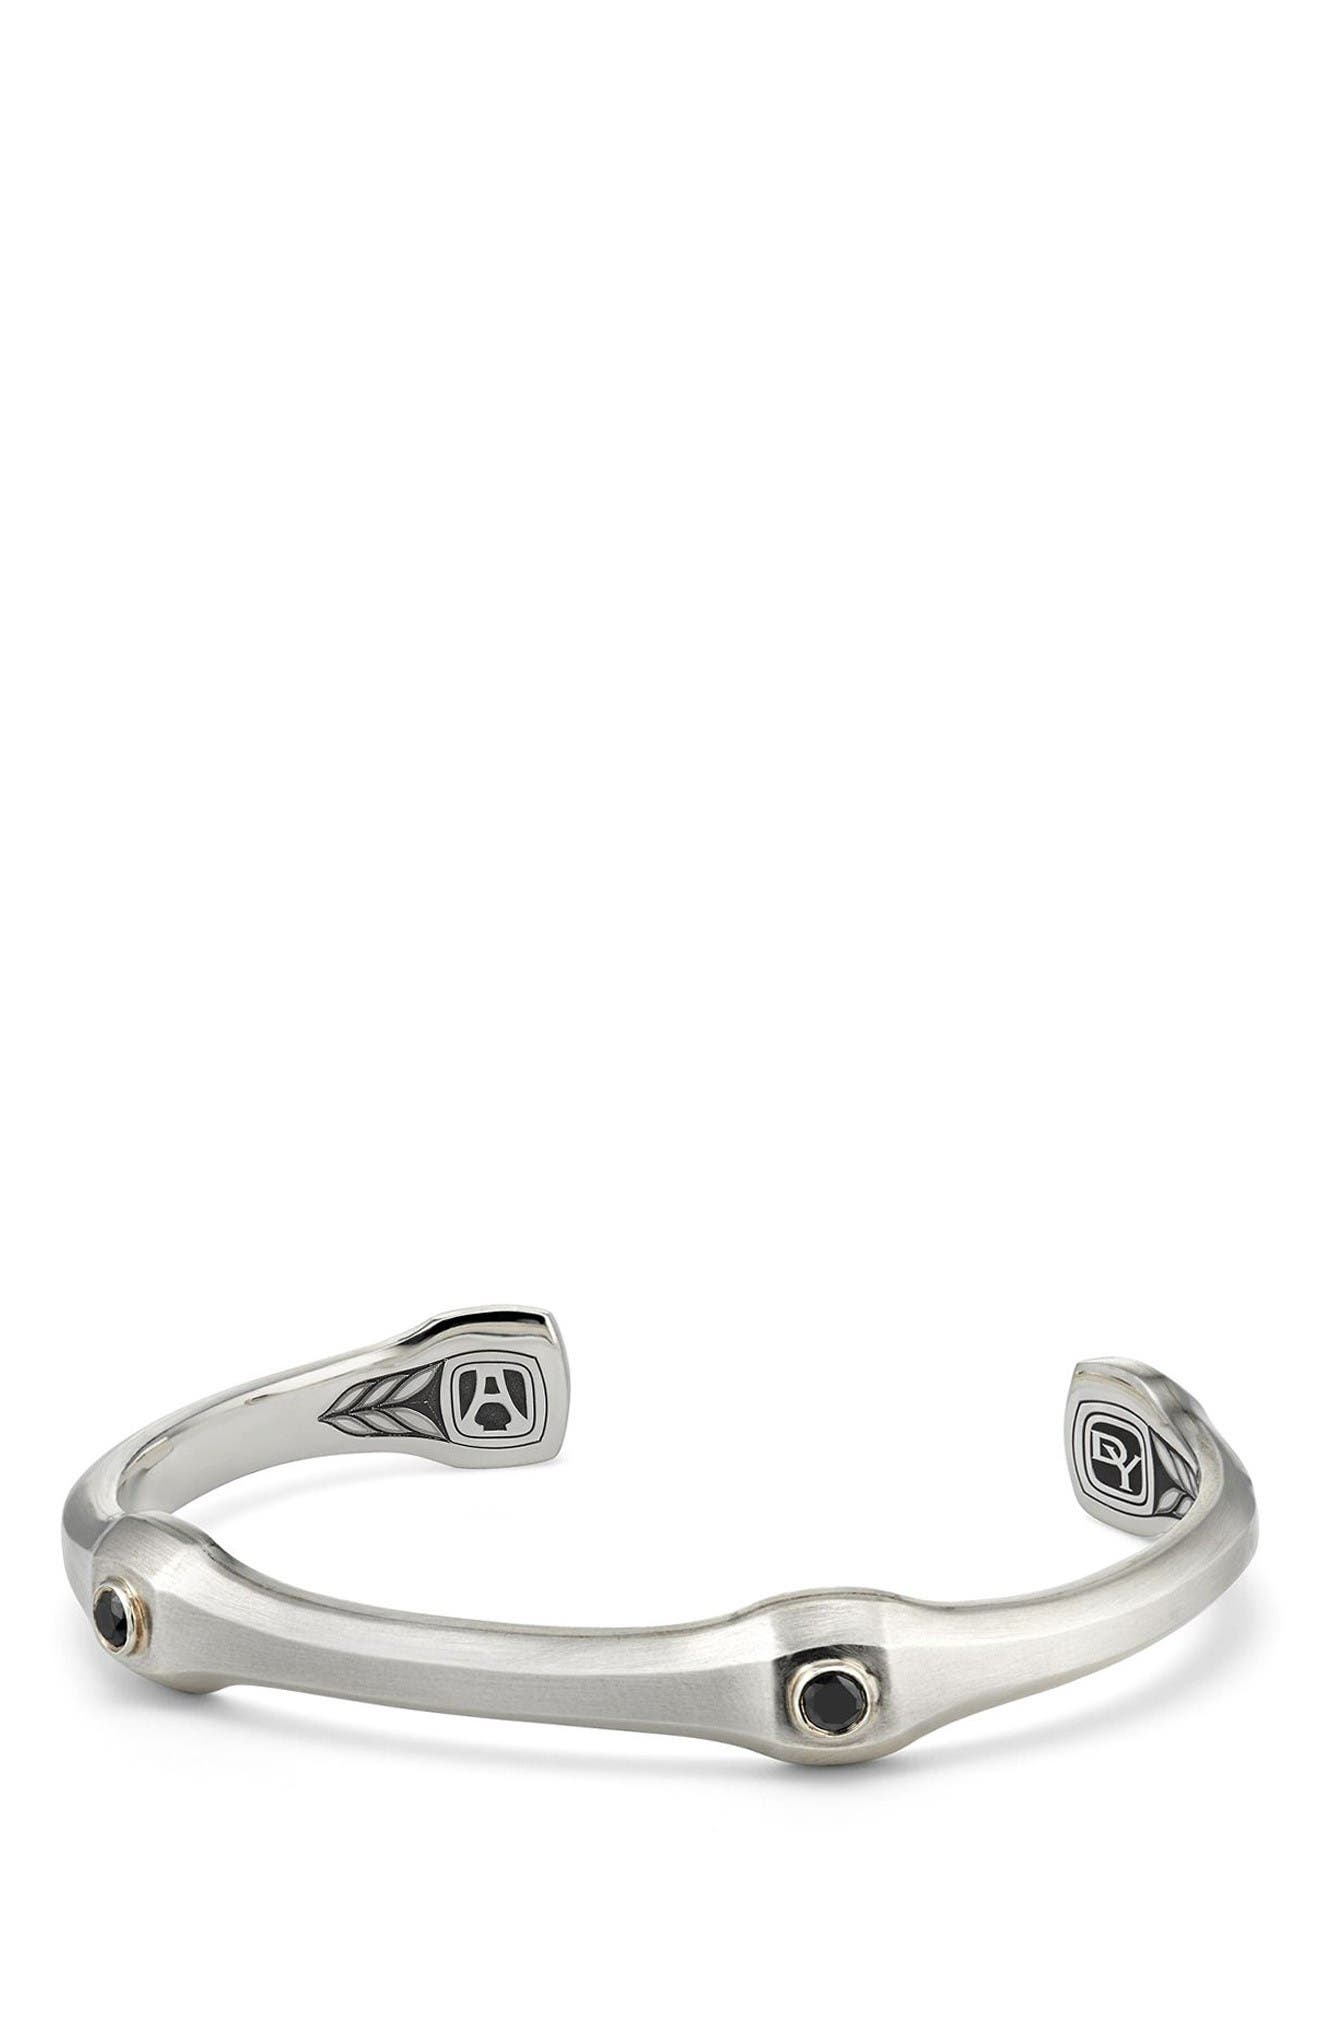 David Yurman Anvil Cuff Bracelet with Black Diamond, 10.5mm